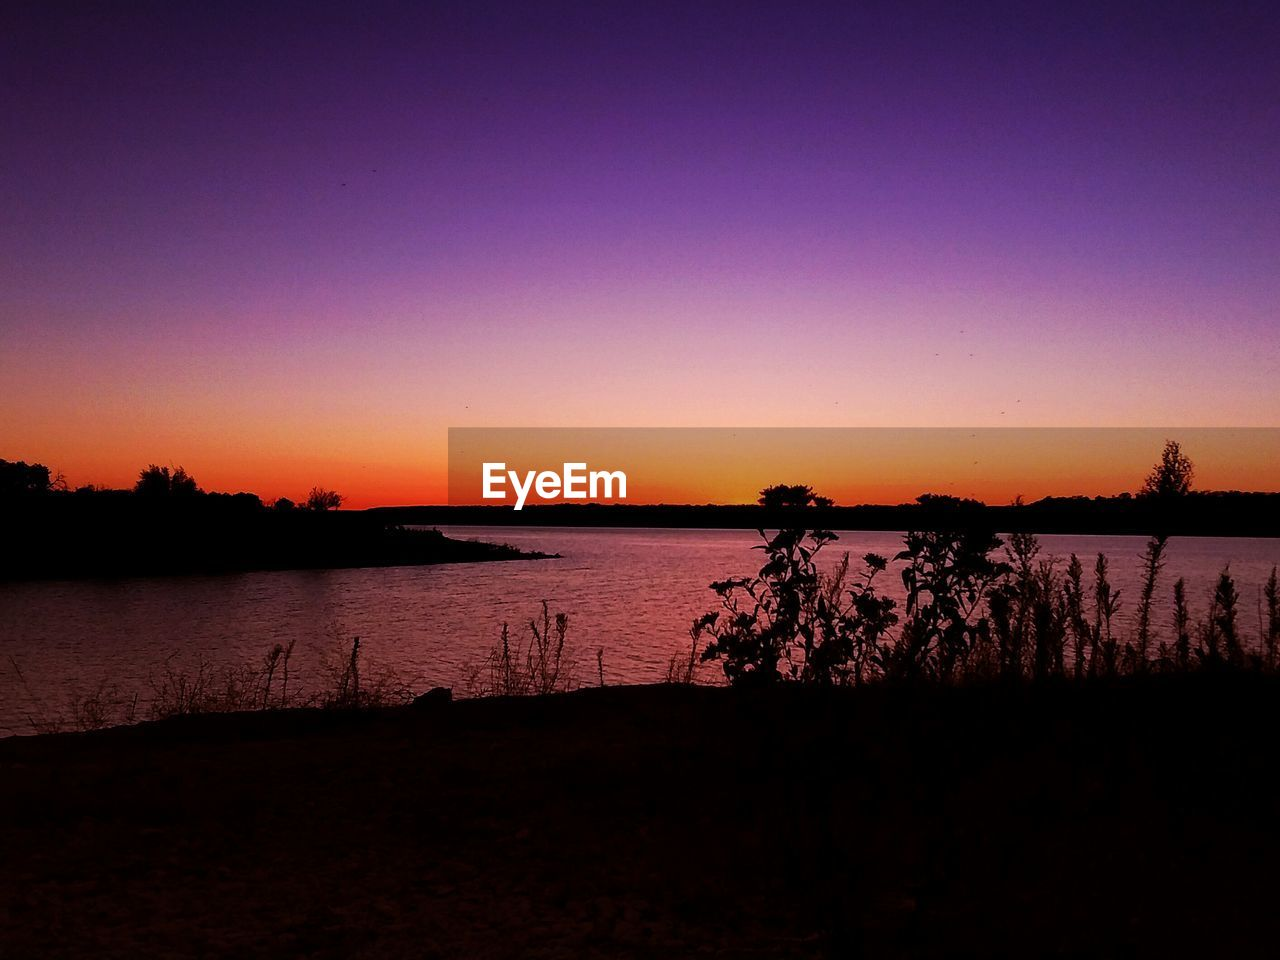 sunset, water, sky, silhouette, beauty in nature, tranquility, scenics - nature, tranquil scene, copy space, nature, lake, idyllic, beach, no people, orange color, clear sky, land, tree, outdoors, purple